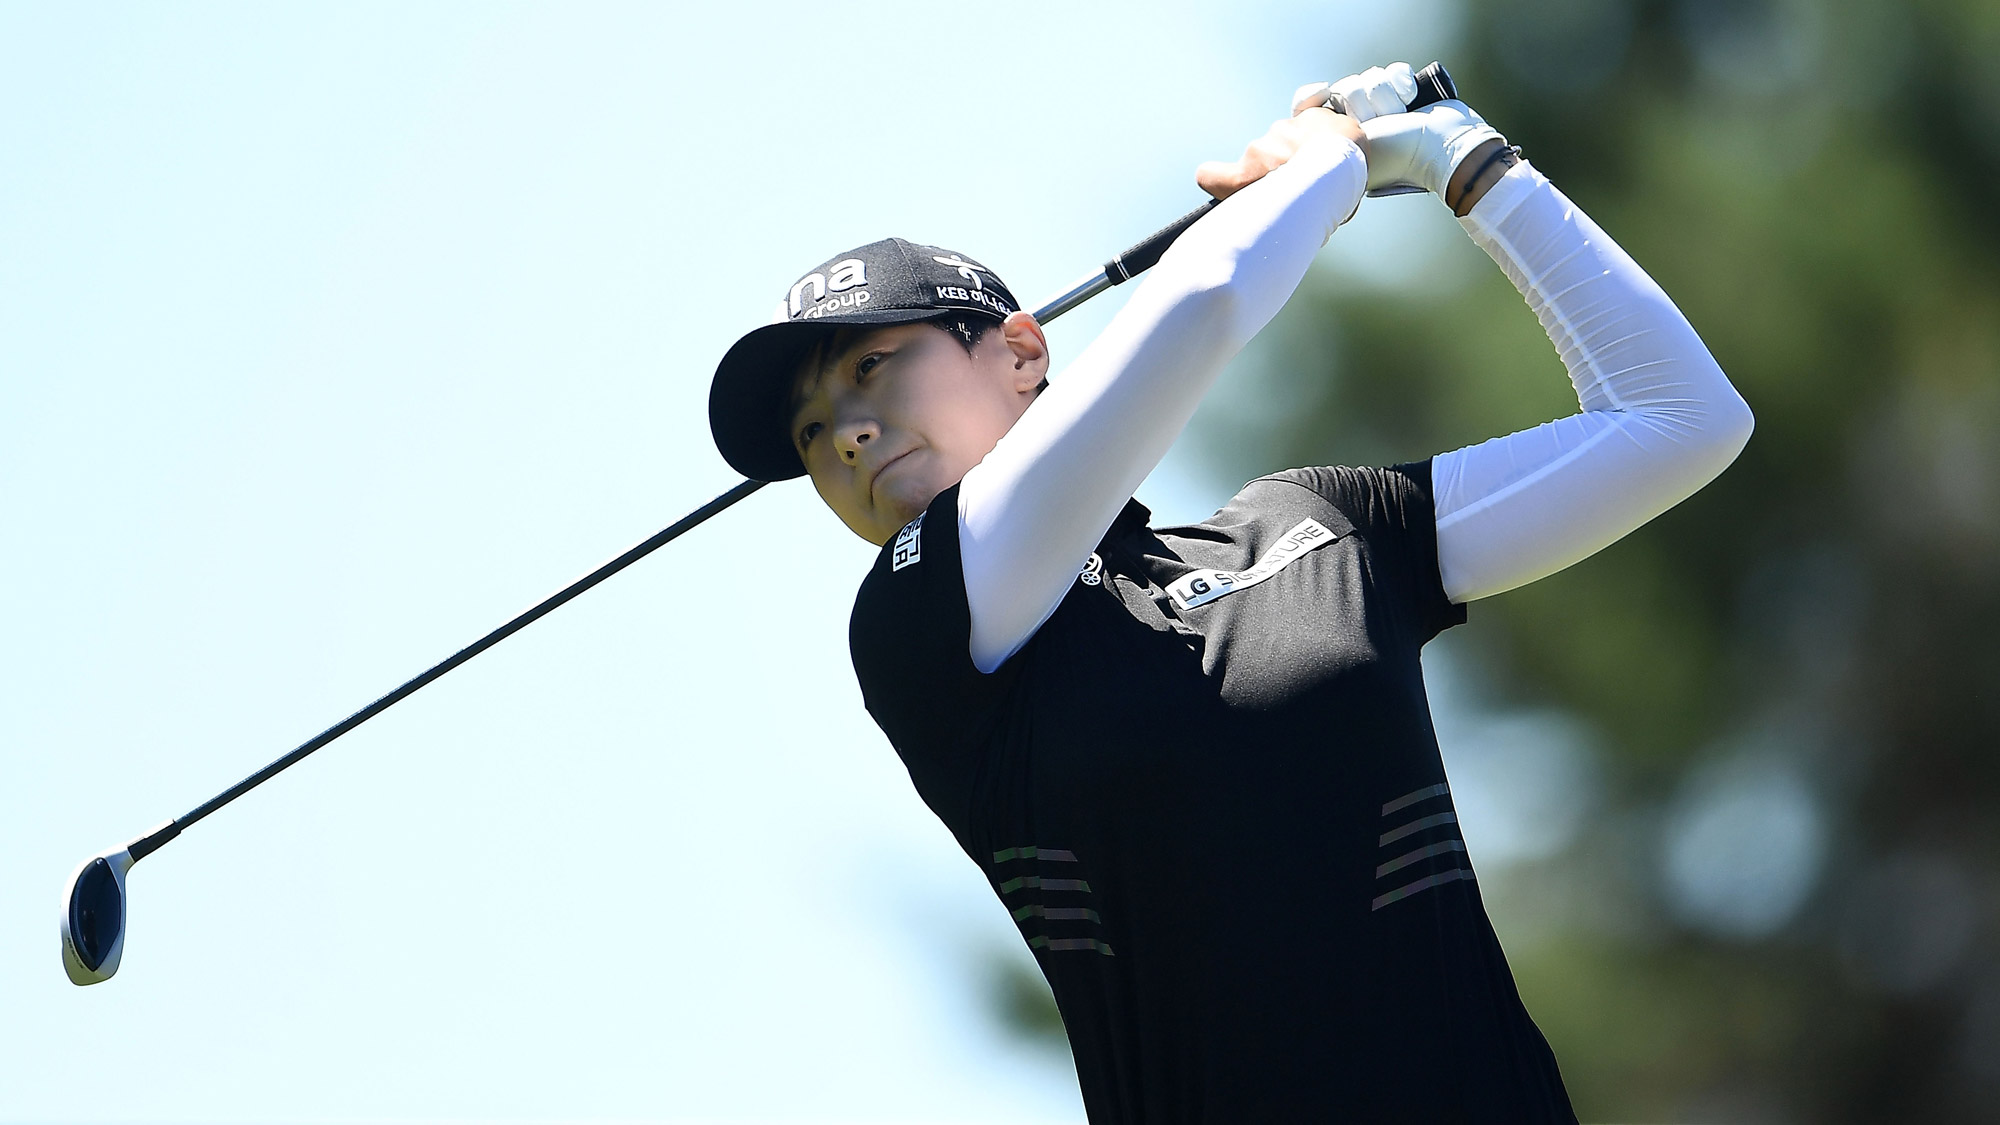 Sung Hyun Park Swings on Friday at the Thornberry Creek LPGA Classic